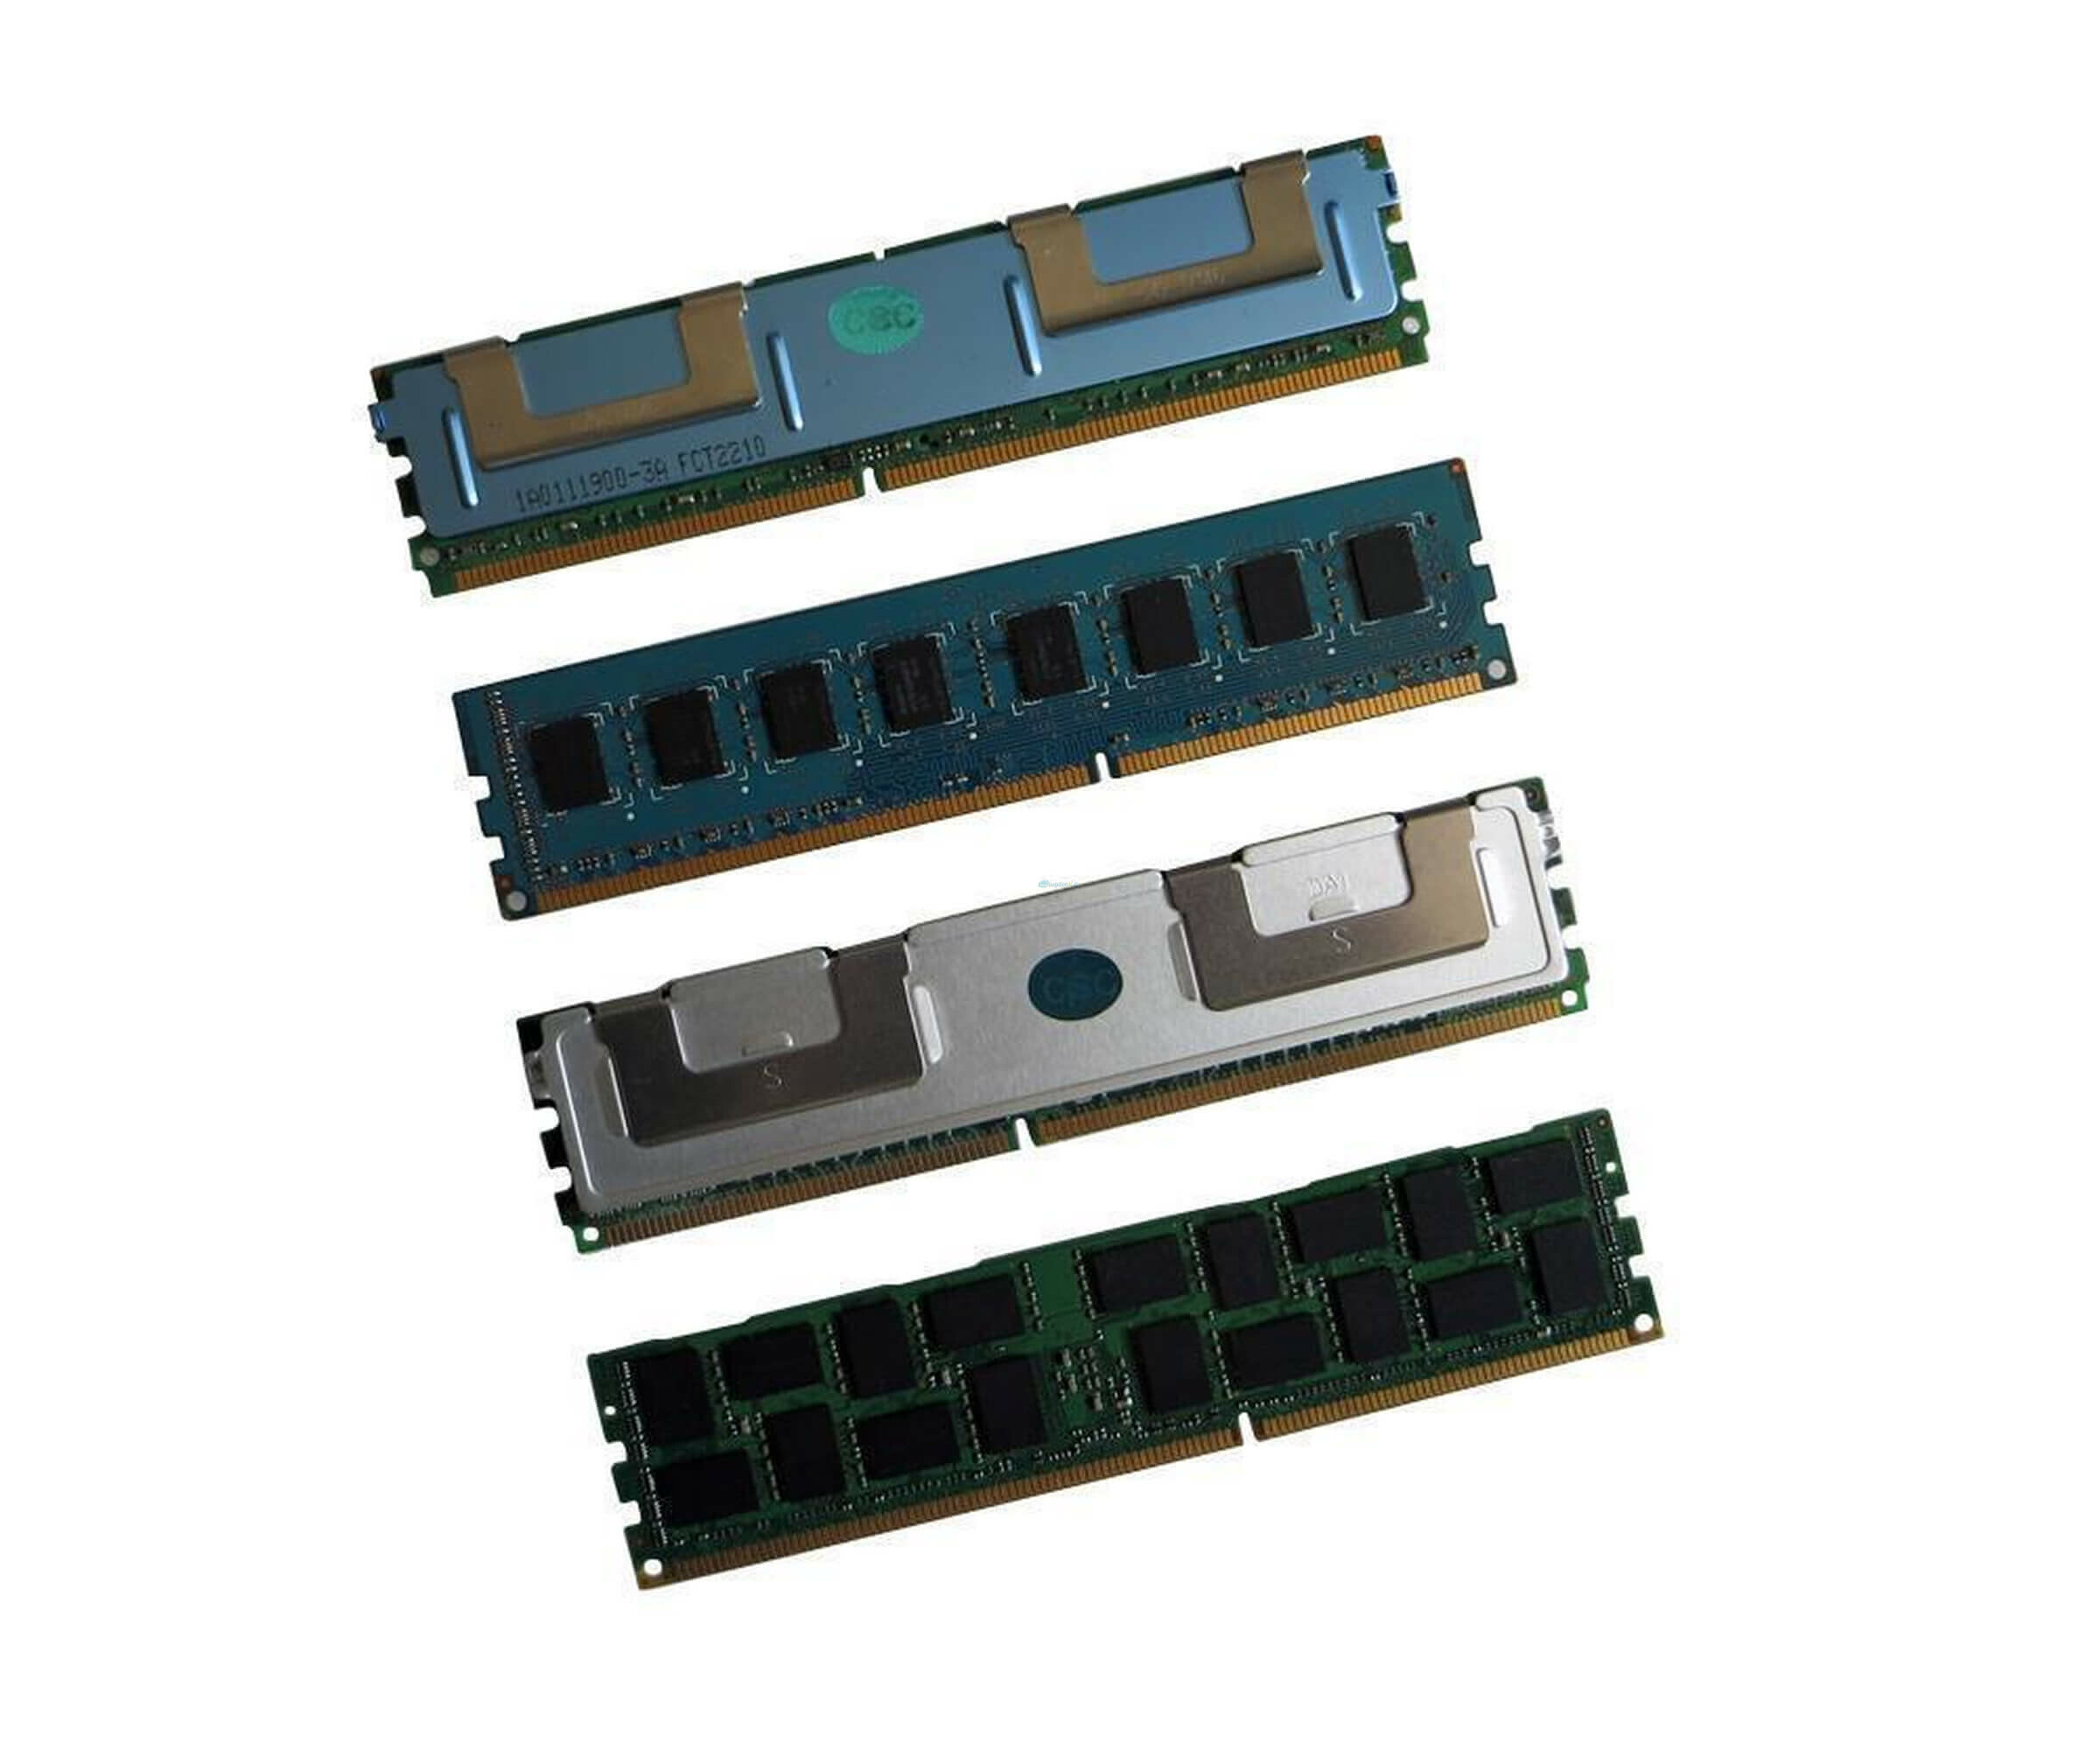 Sun X7602A Memory Kit - 512 MB (2x 256 MB) - PC-2100 - DIMM 184-PIN - DDR SDRAM